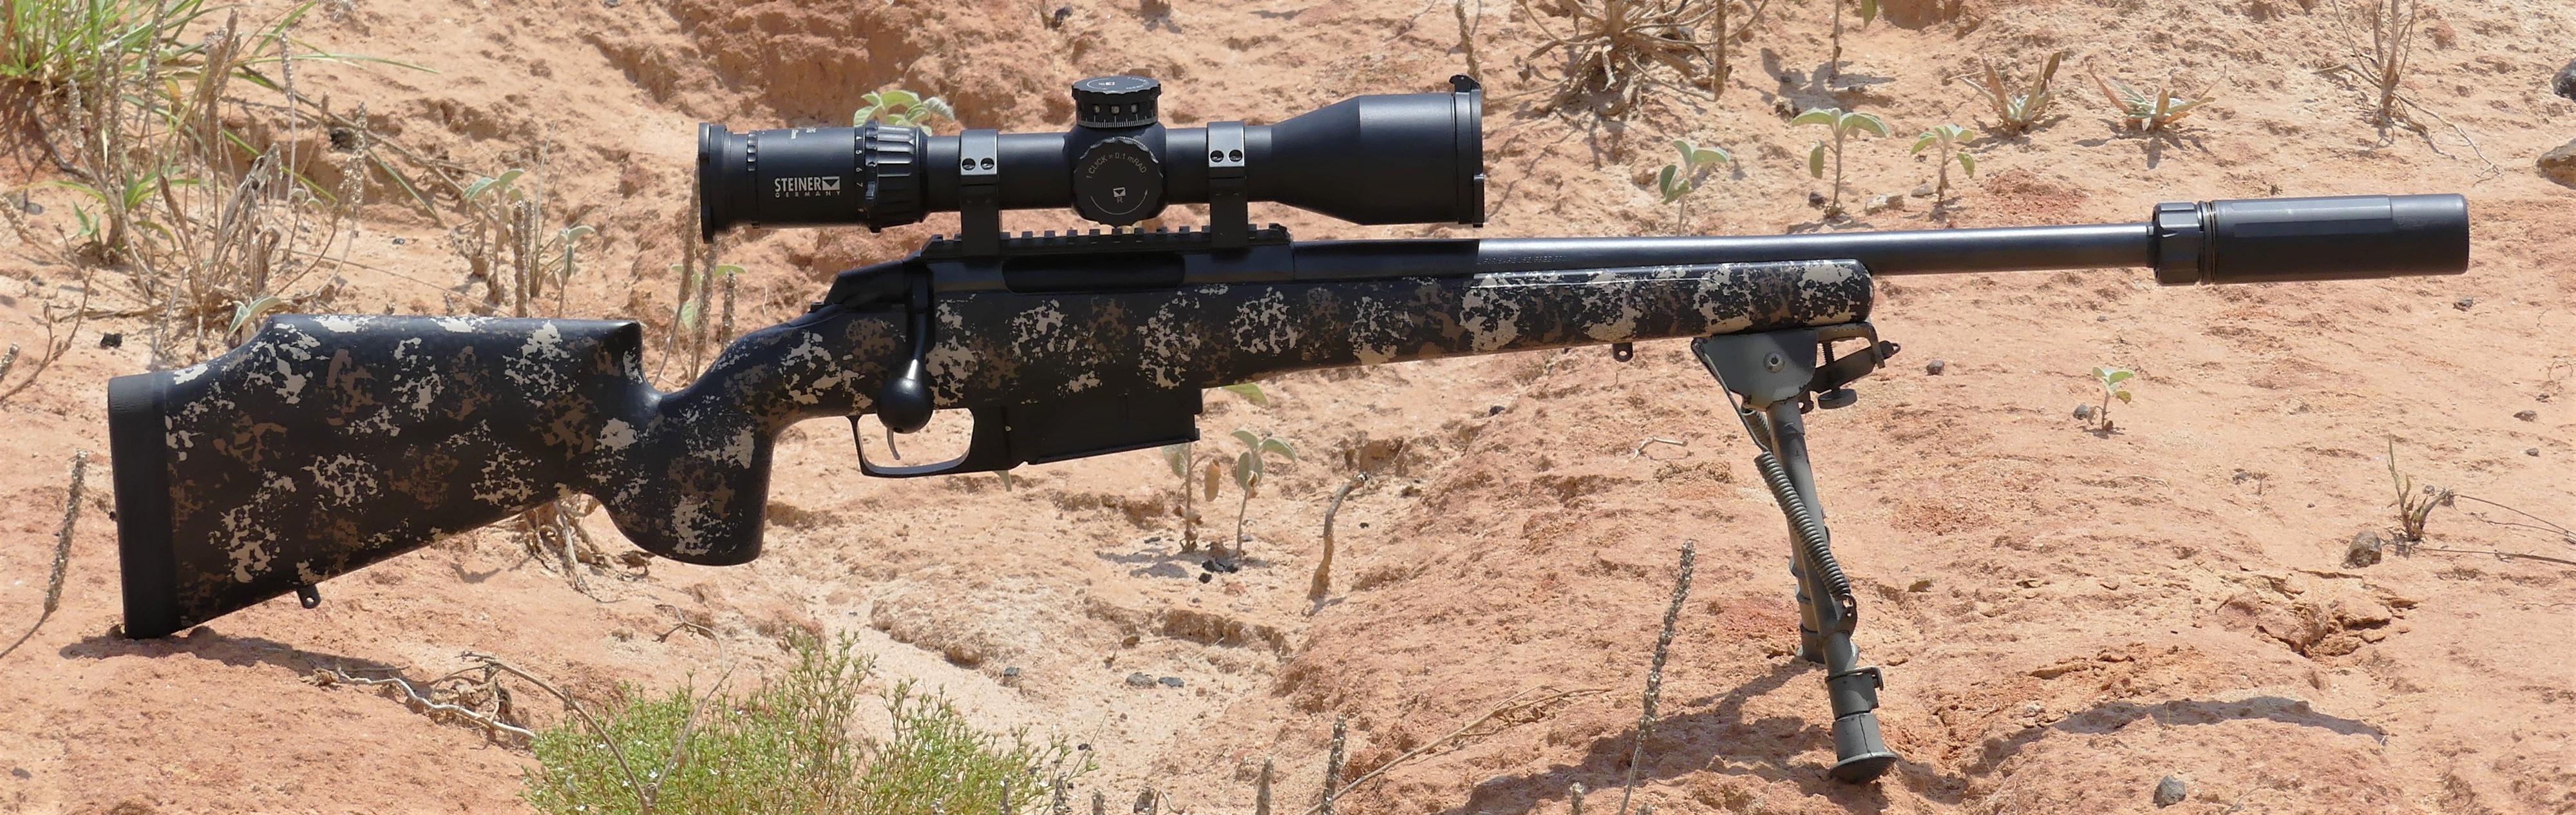 Aftermarket stock options for Tikka T3 | Sniper's Hide Forum